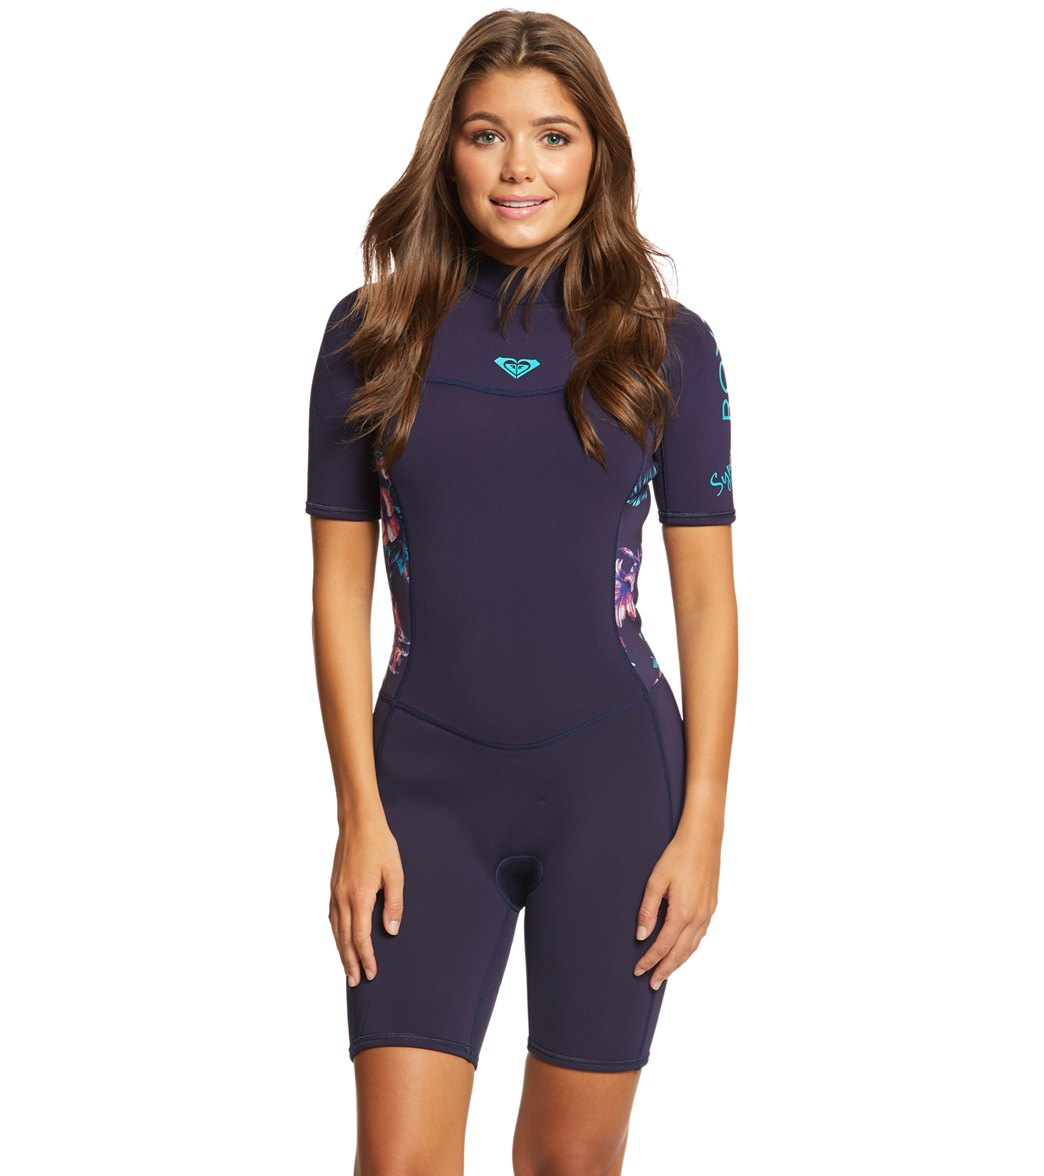 Roxy Women s 2 2MM Syncro Back Zip Short Sleeve Spring Suit at ... 495dd0efd